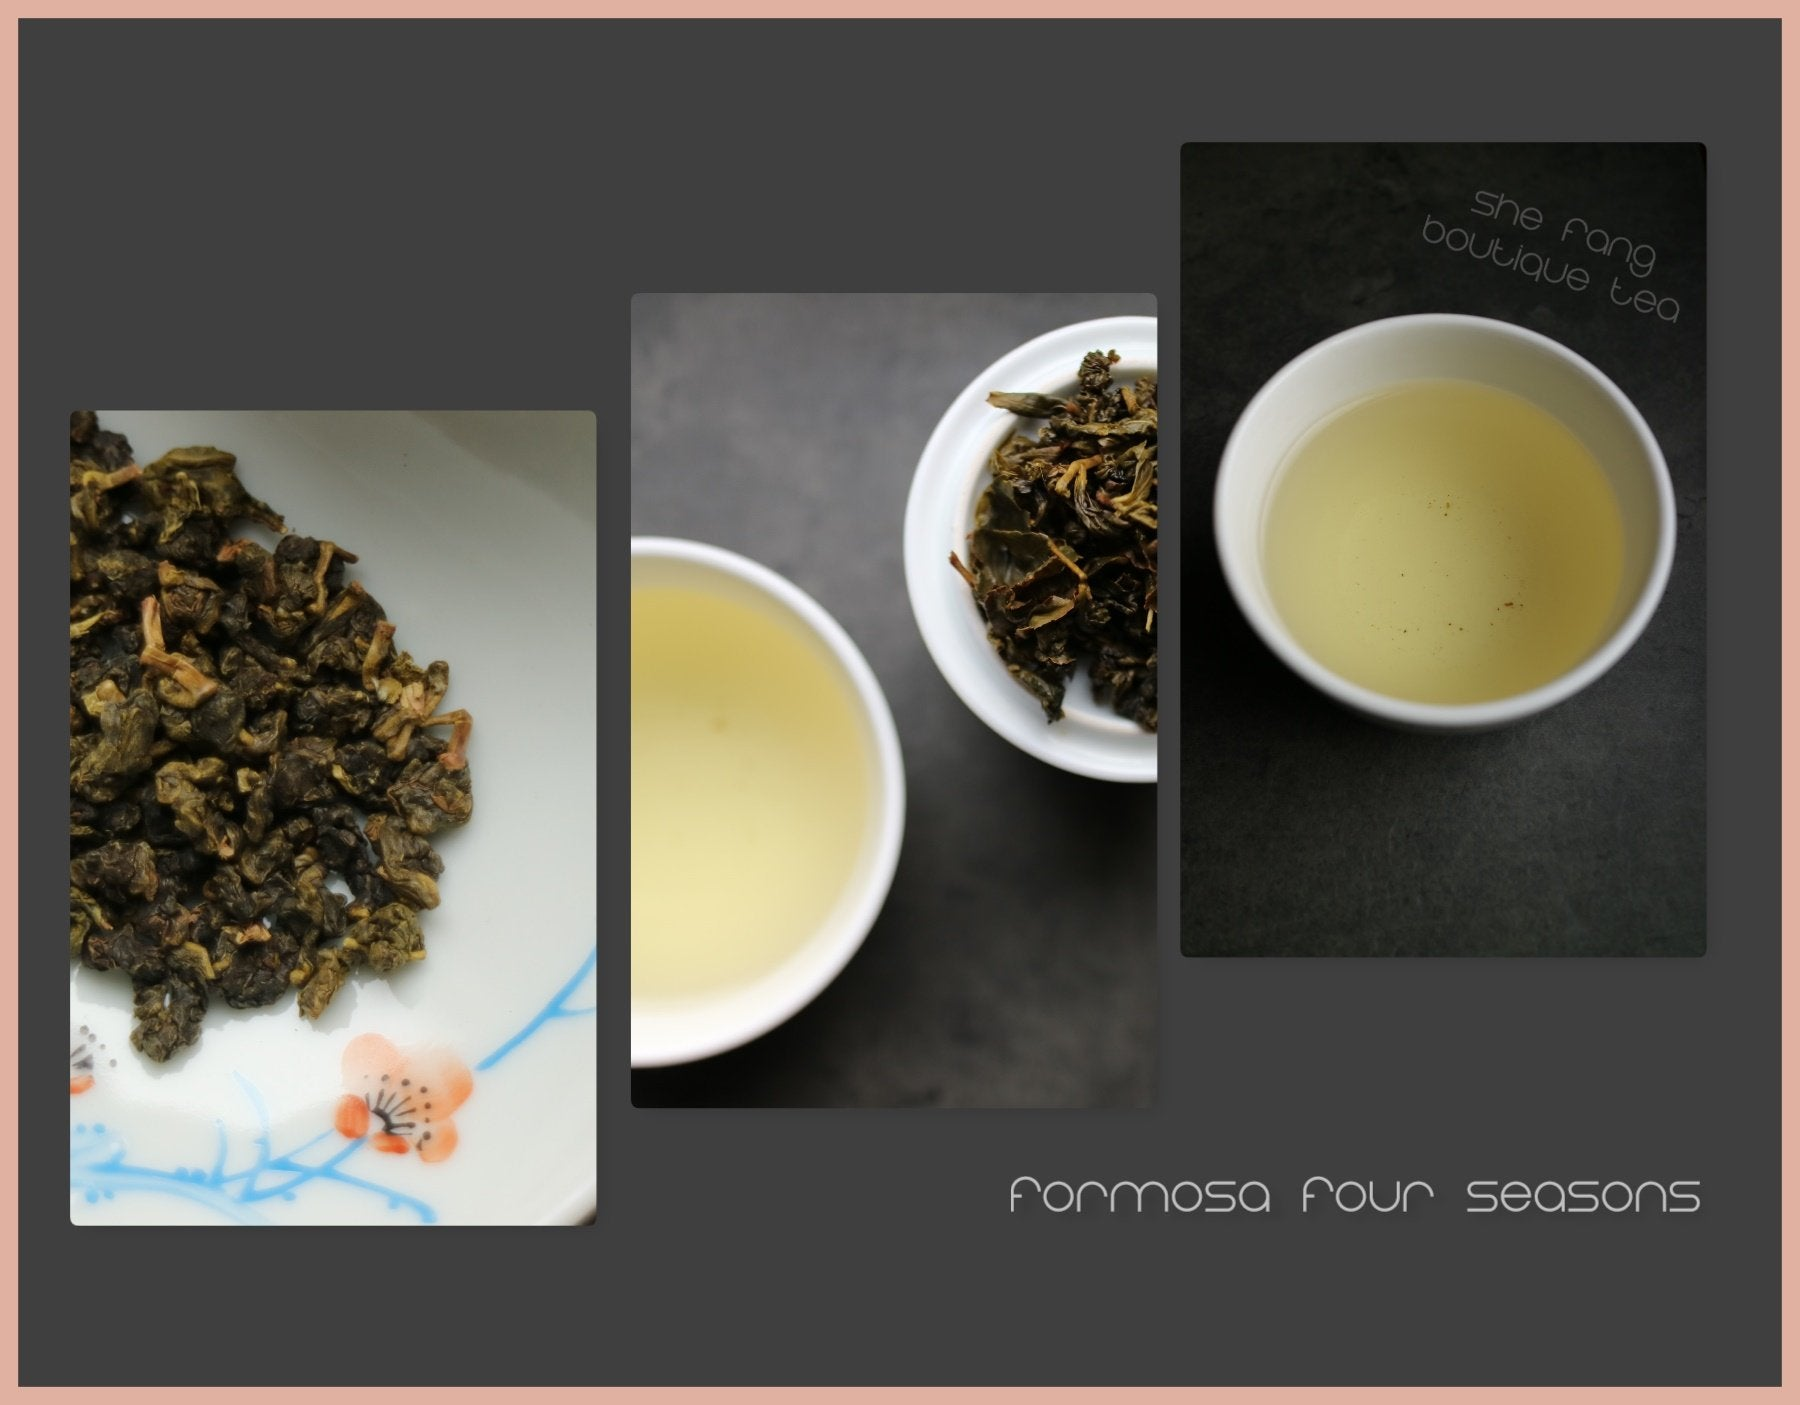 Tasting notes  - Formosa Four Seasons Winter Special N. 303